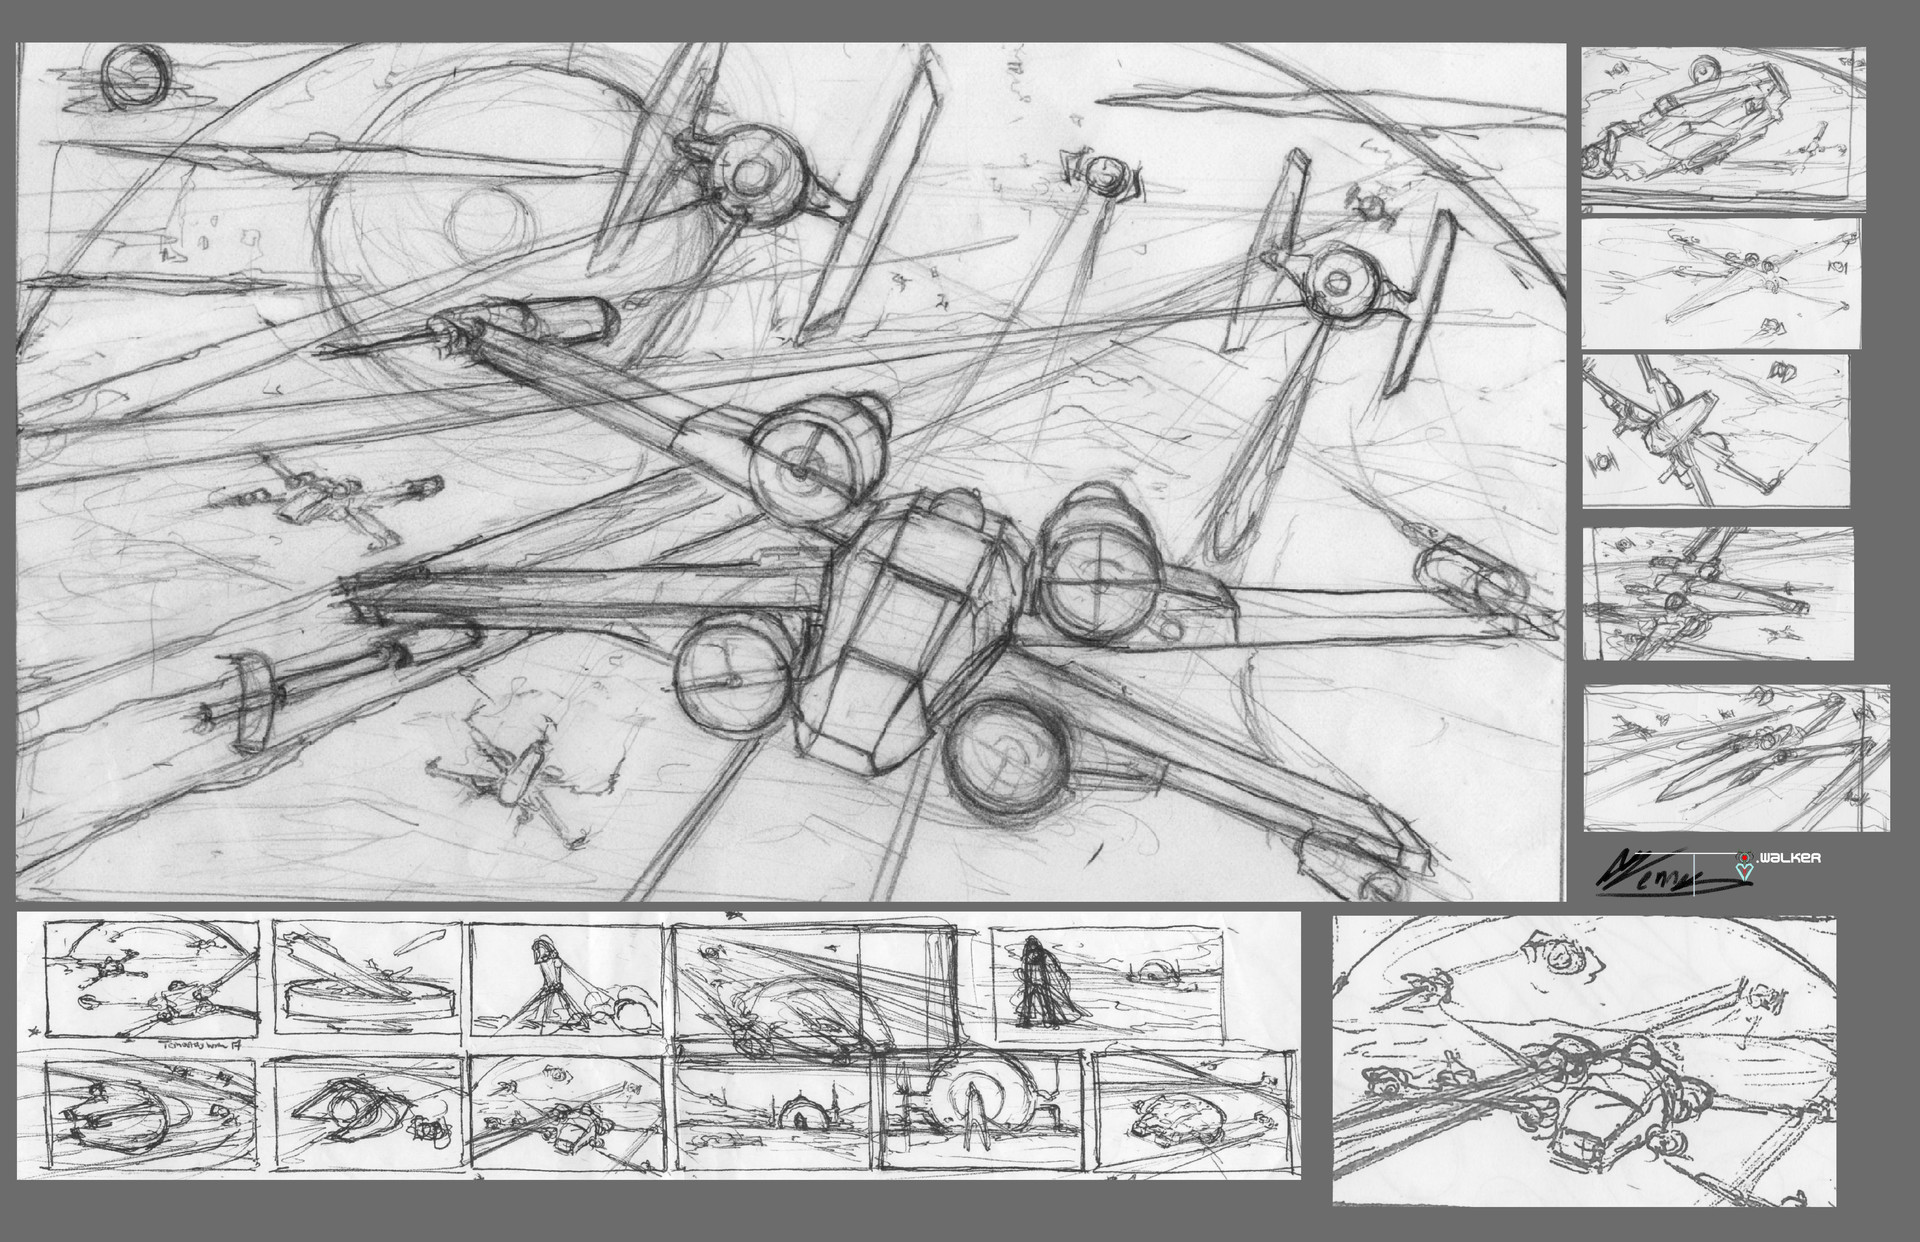 Temarius walker star wars key frame process x wing 01